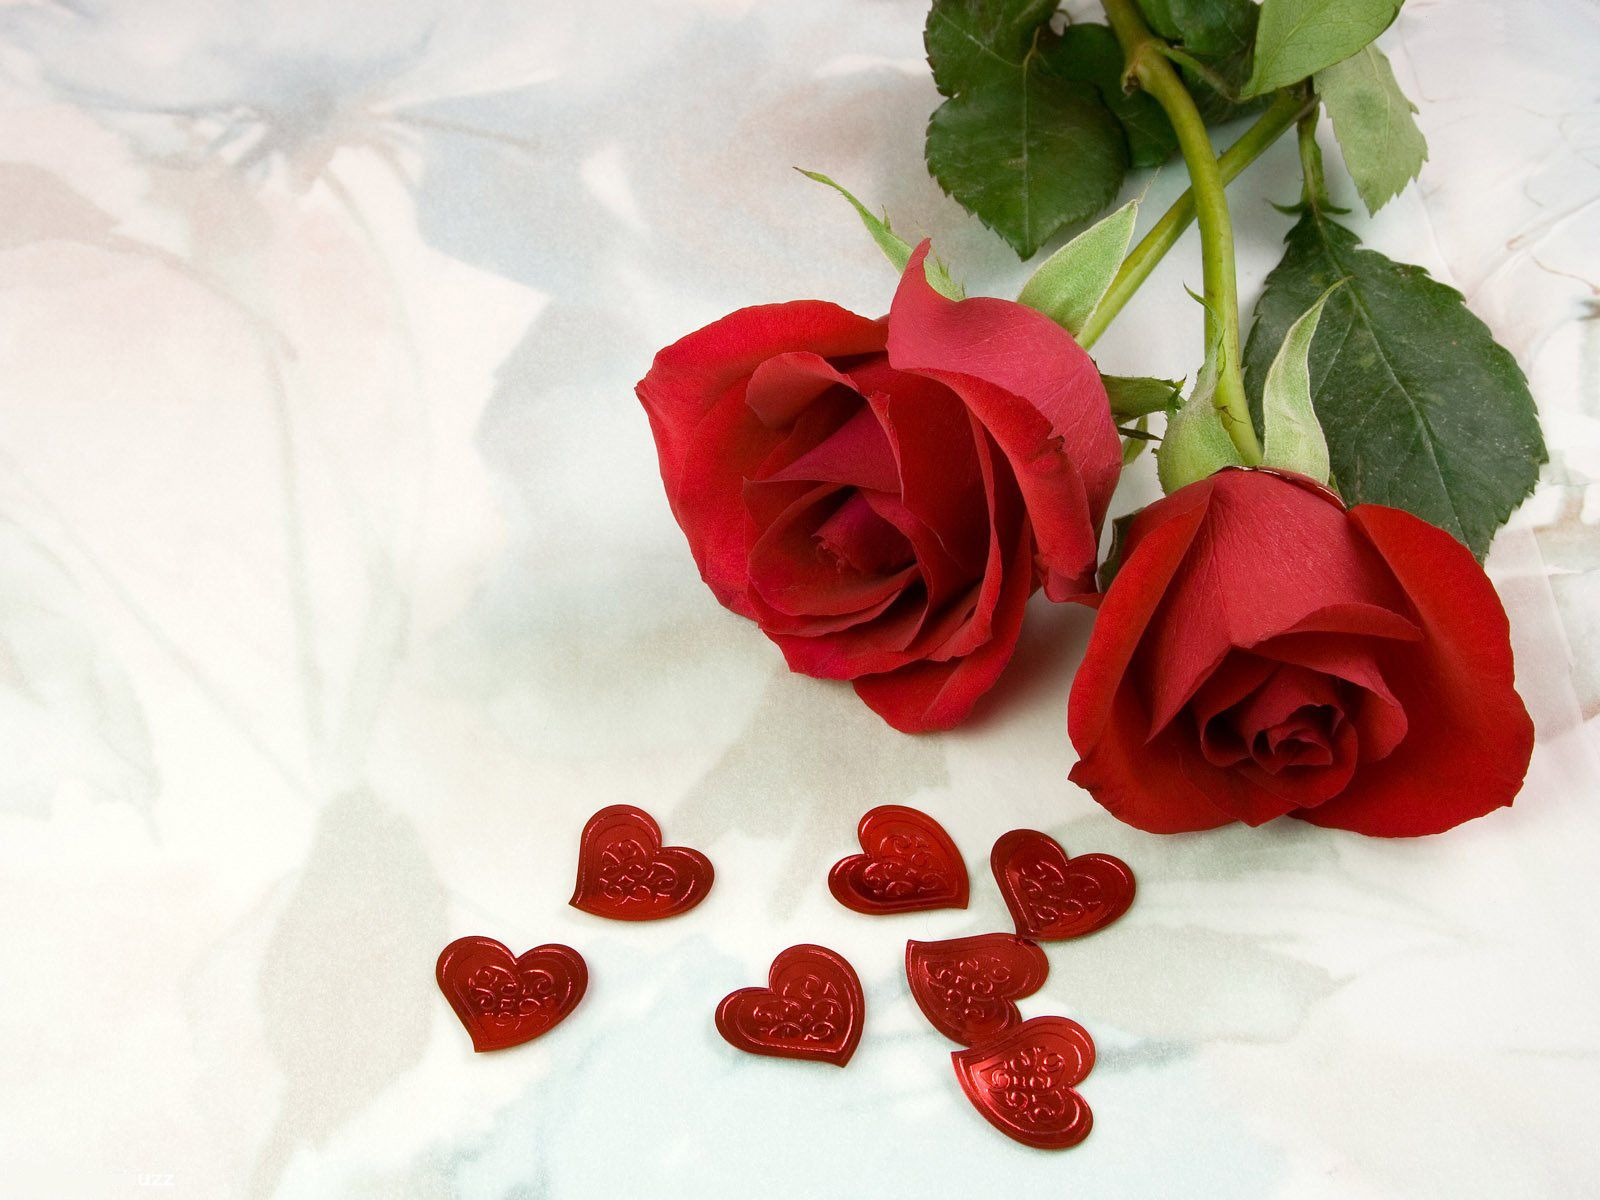 Love roses wallpaper wallpapers for free download about HD